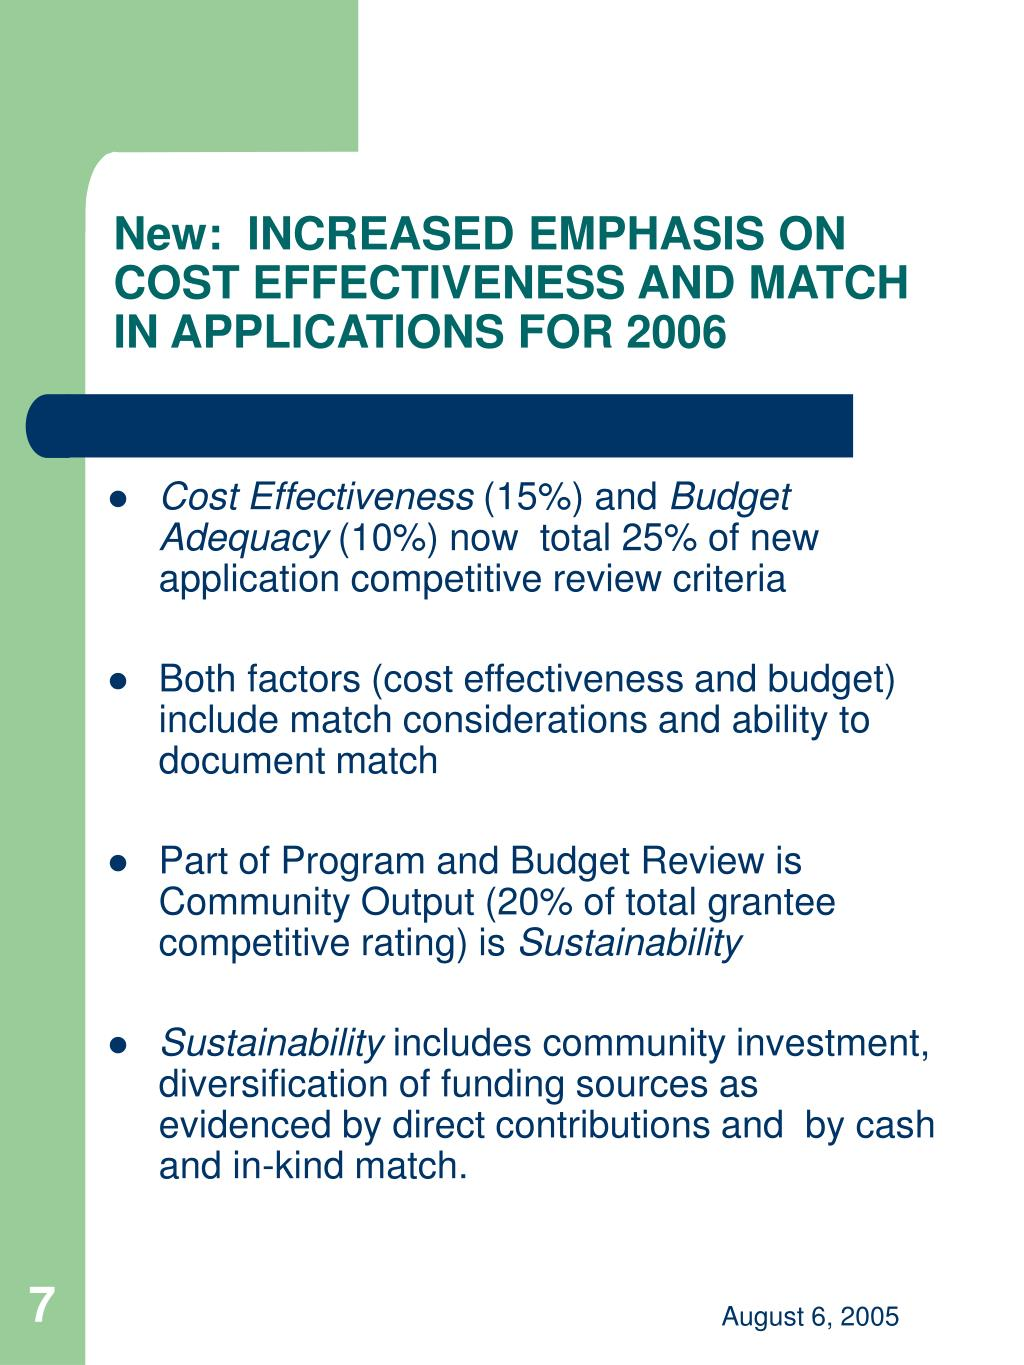 New:  INCREASED EMPHASIS ON COST EFFECTIVENESS AND MATCH IN APPLICATIONS FOR 2006